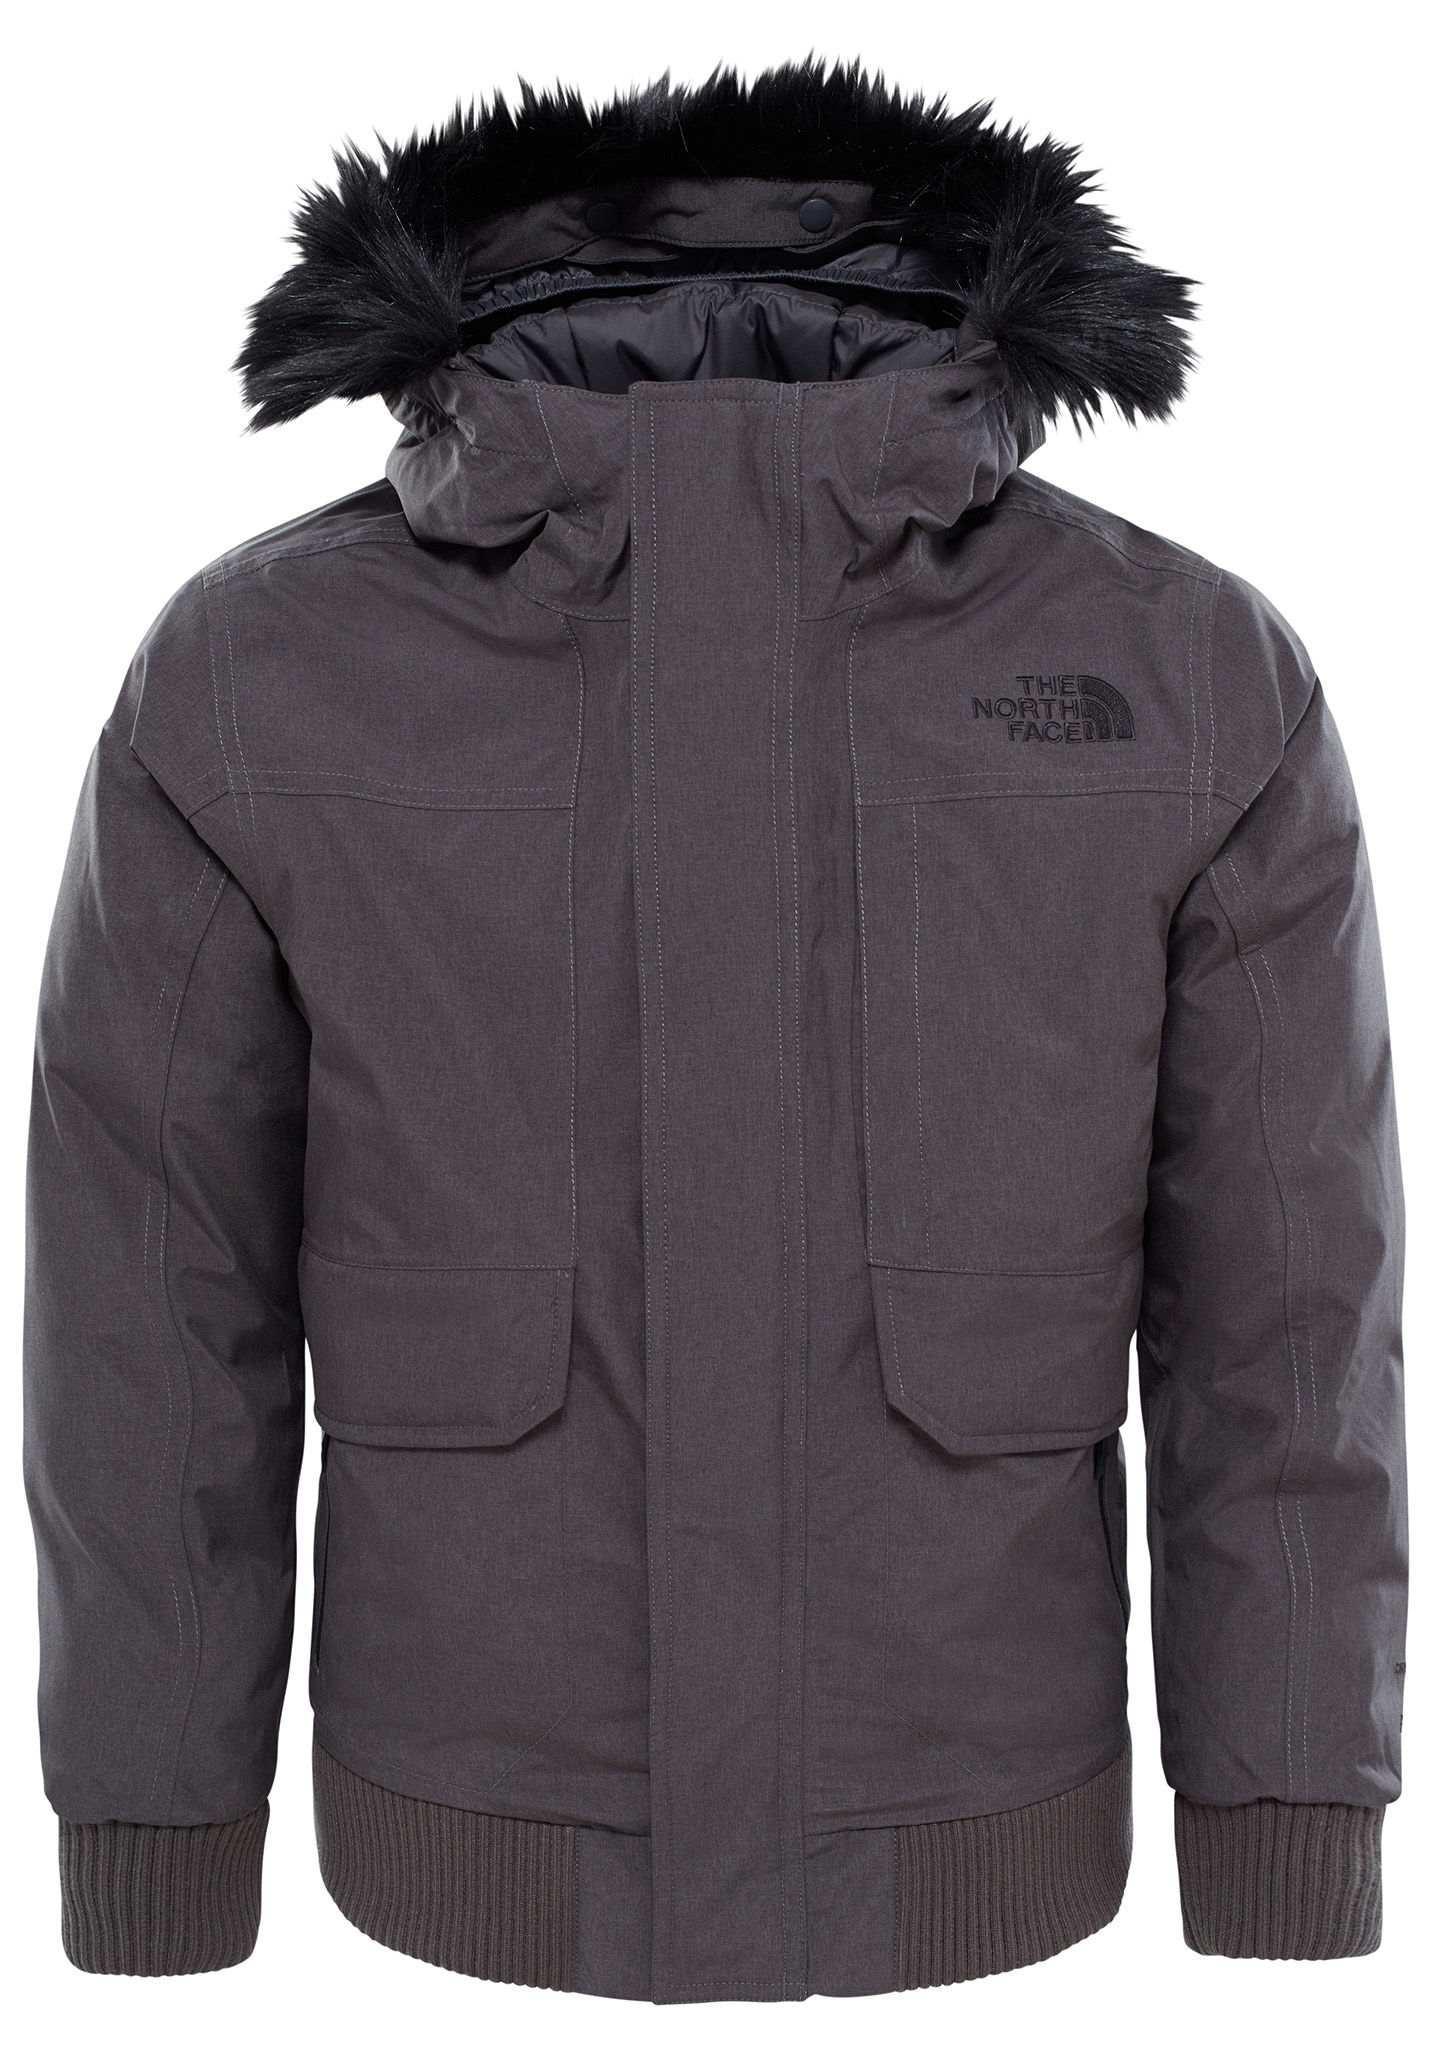 THE NORTH FACE Gotham Down - Giacca outdoor per Bambini - Grigio - Planet  Sports c5183de46a64